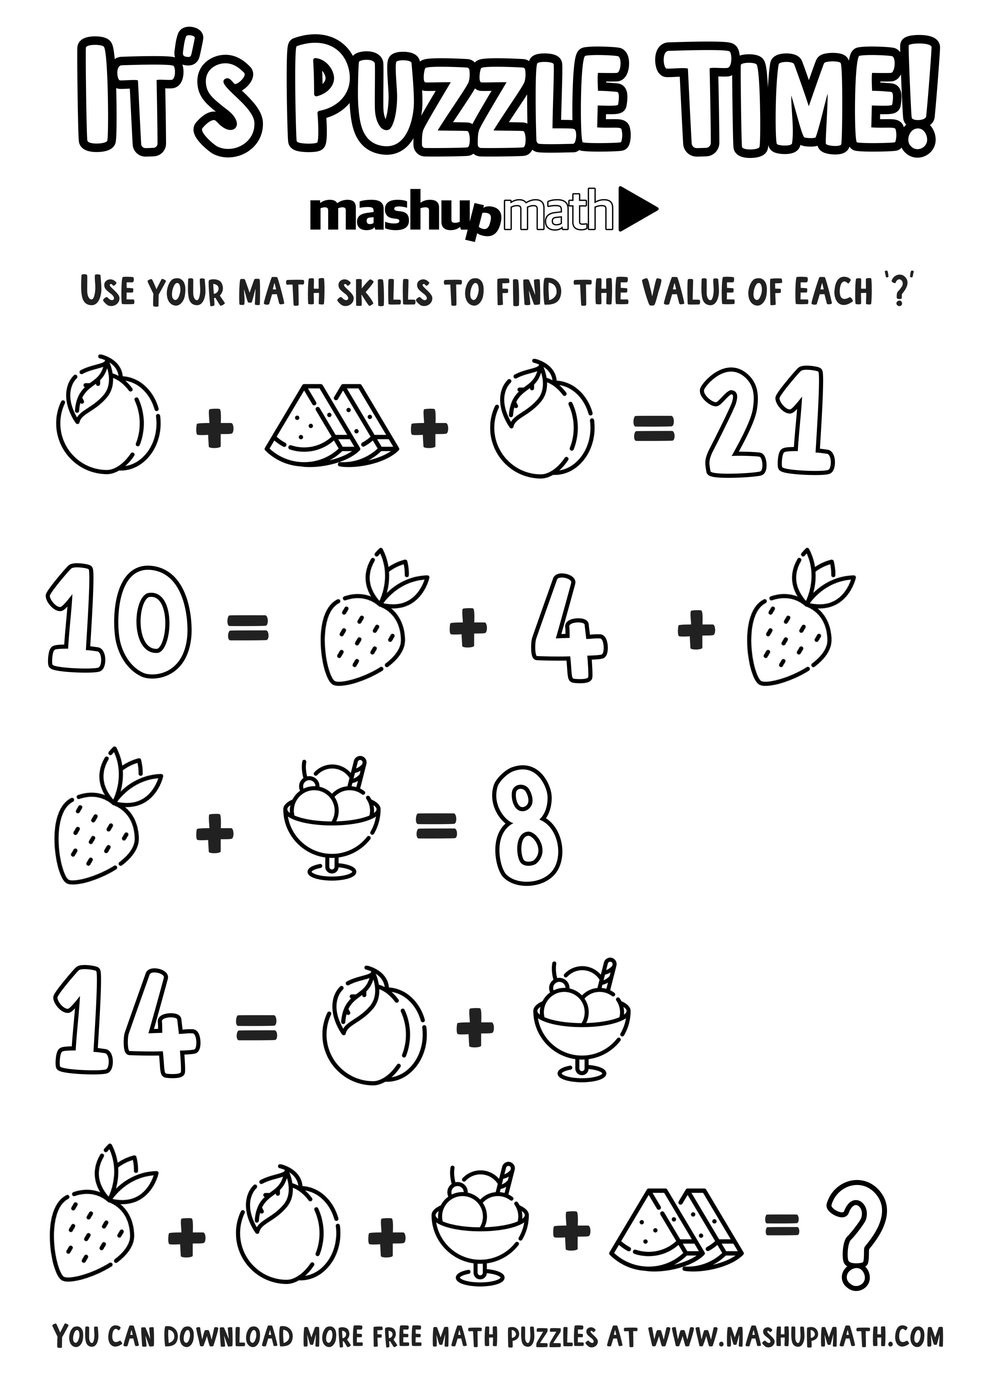 6th Grade Math Puzzles Printable Free Math Coloring Worksheets for 5th and 6th Grade — Mashup